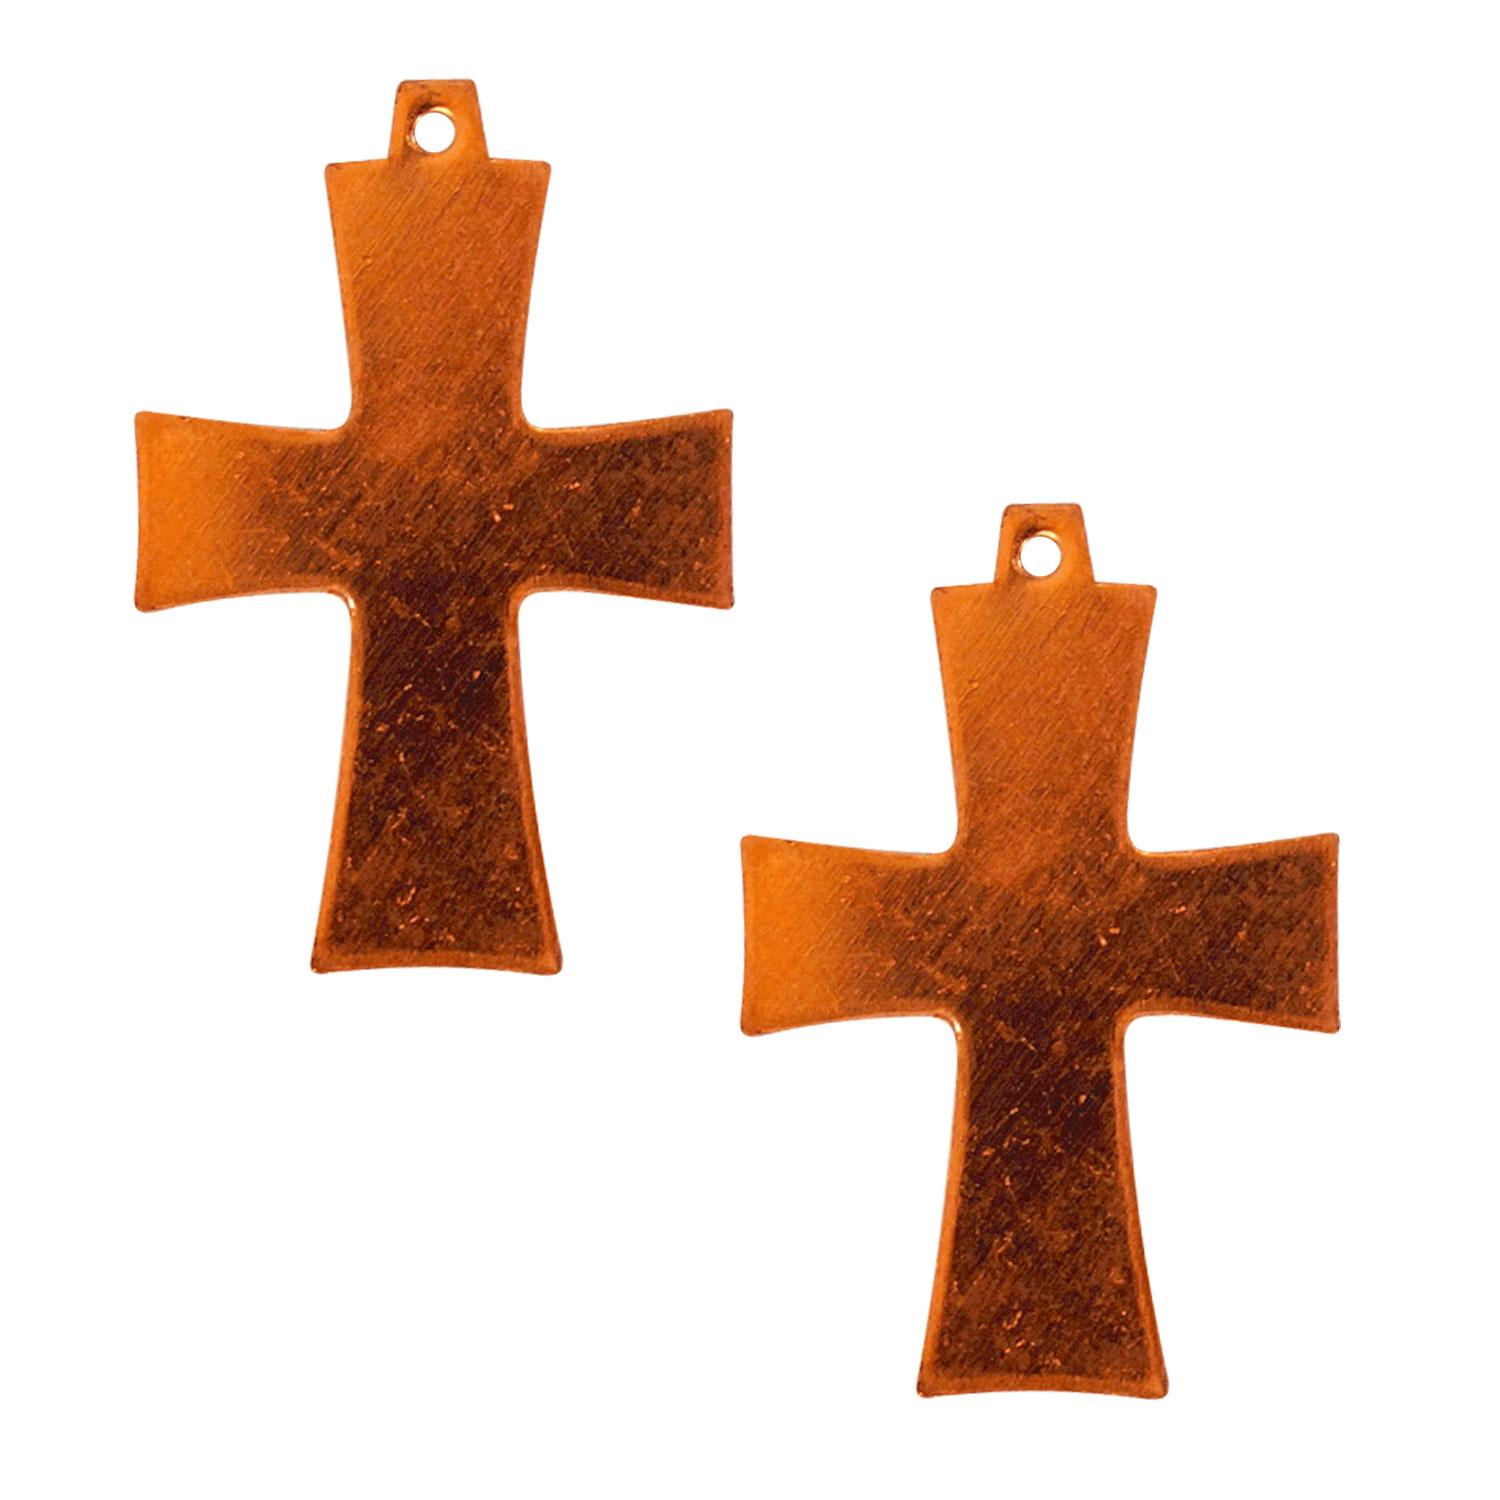 Ornate Cross Copper Shape with Tab - 2 Pack